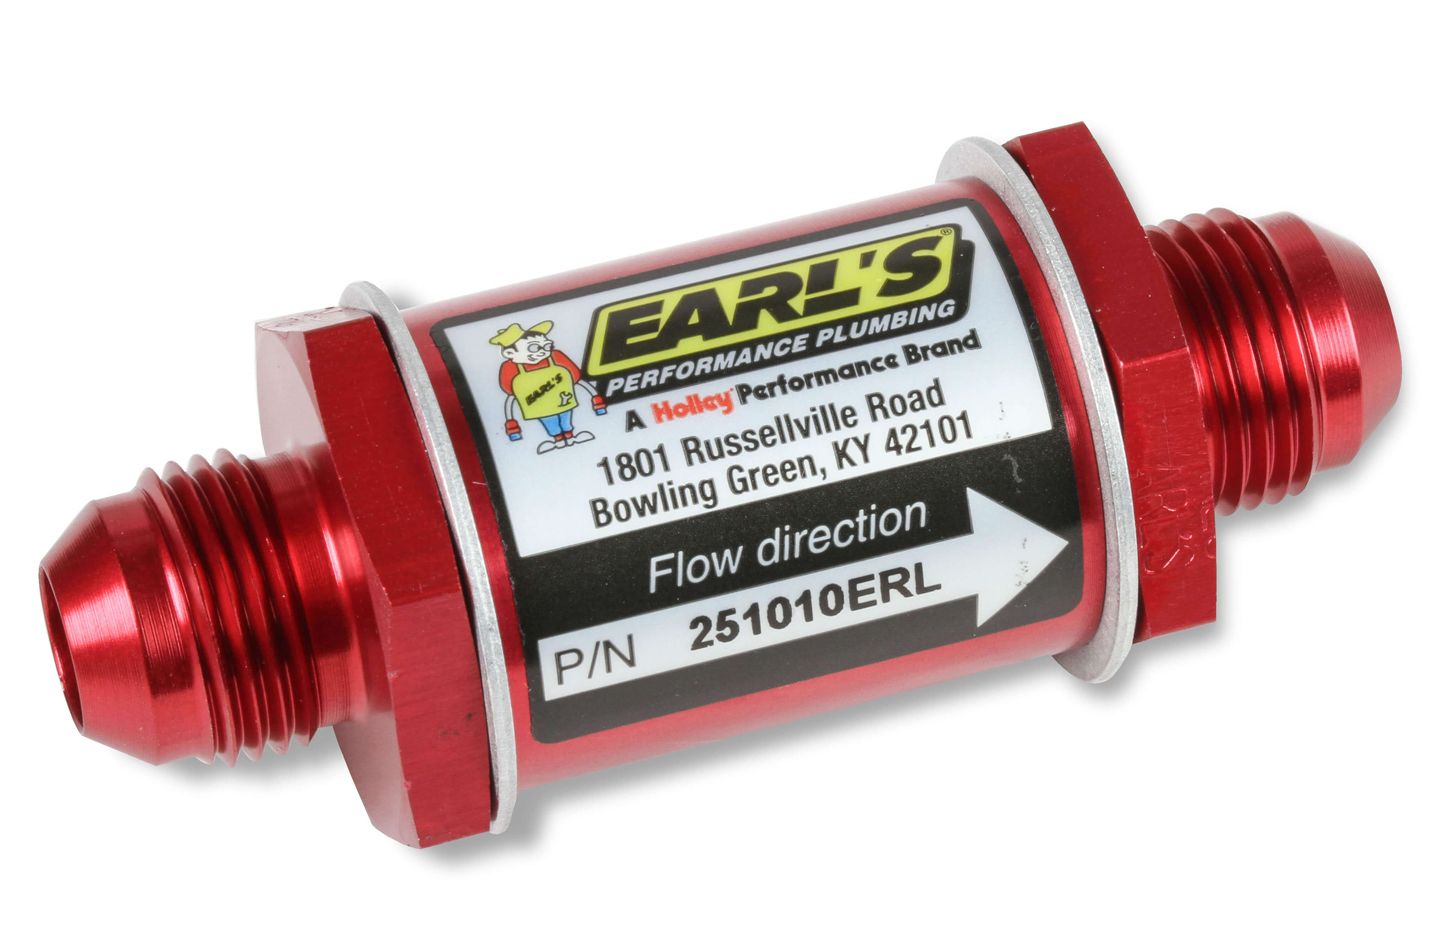 Earls 251010ERL Check Valve, 10 AN Male Inlet, 10 AN Male Outlet, 150 psi Max, Aluminum, Red Anodize, Each